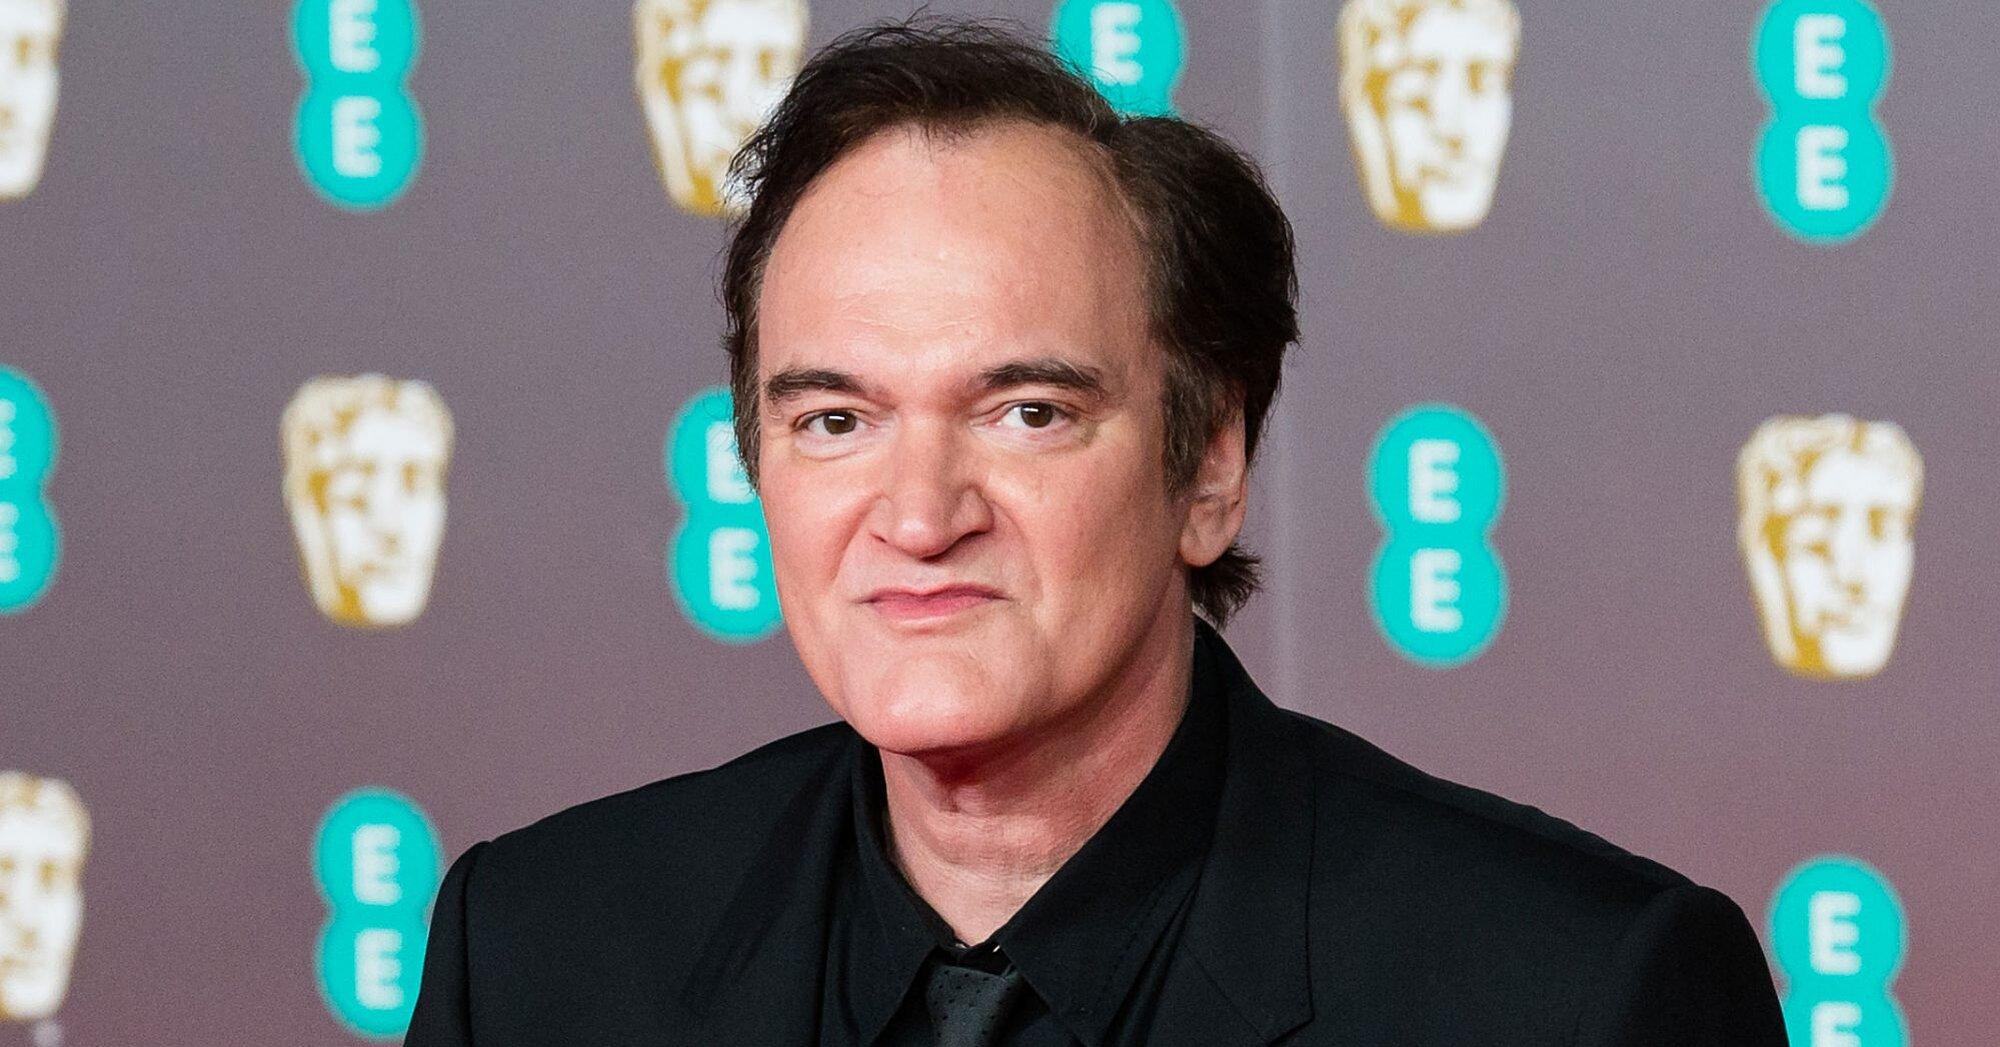 Quentin Tarantino gives us his Halloween movie-watching recommendation